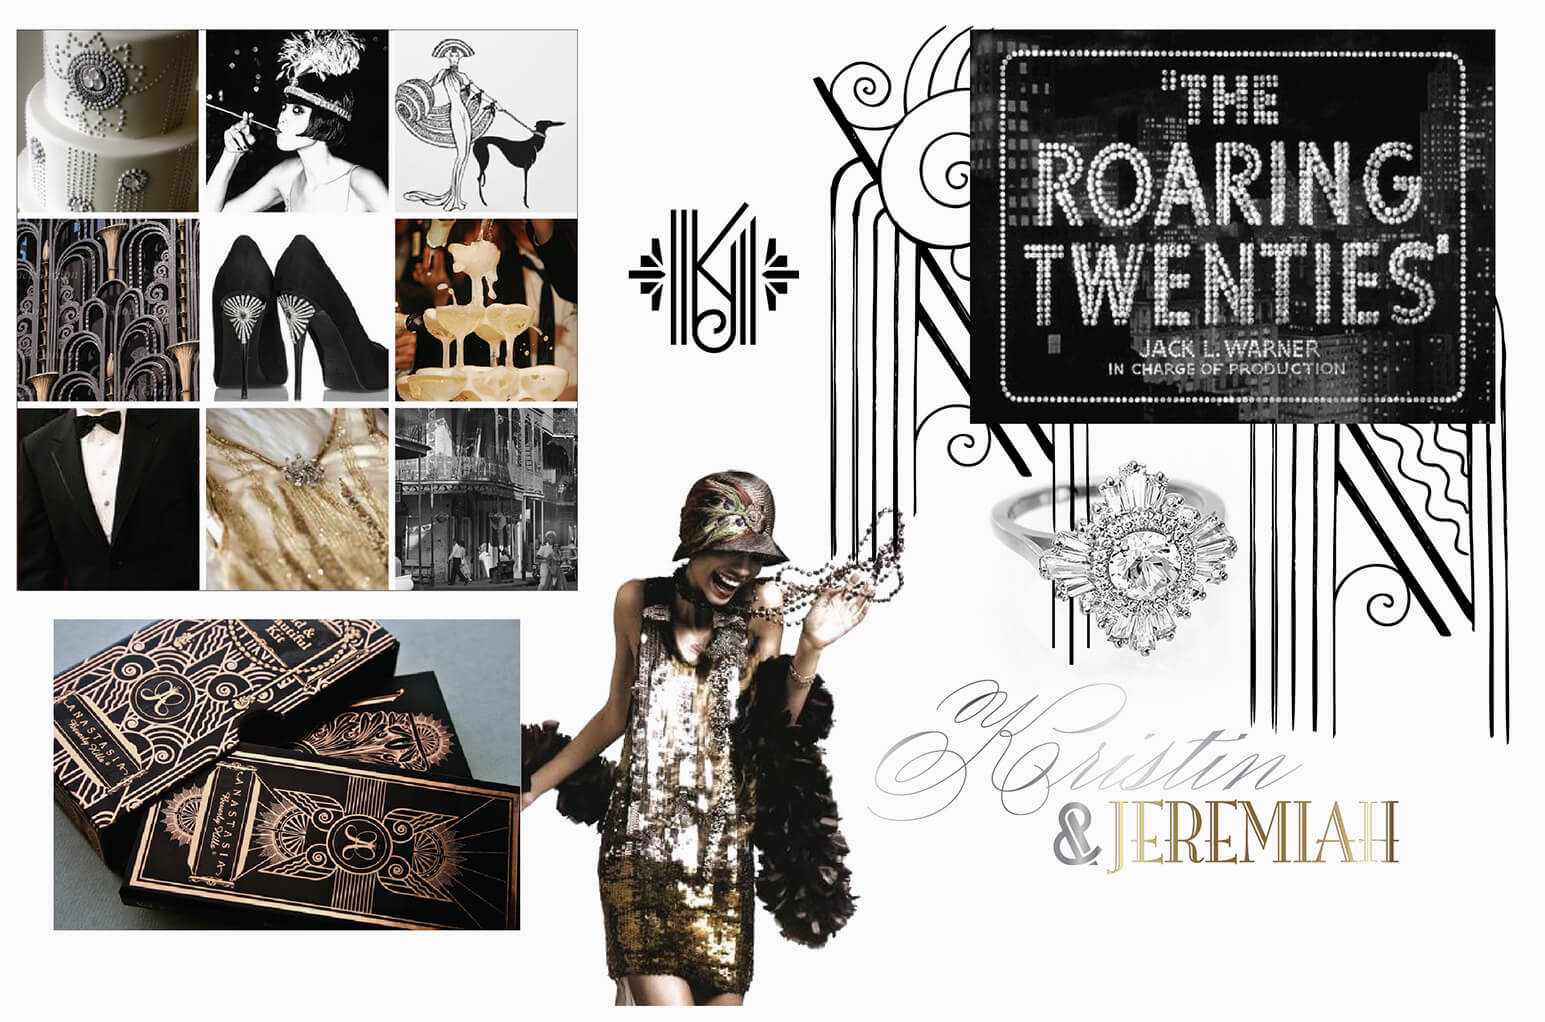 The roaring twenties flapper images